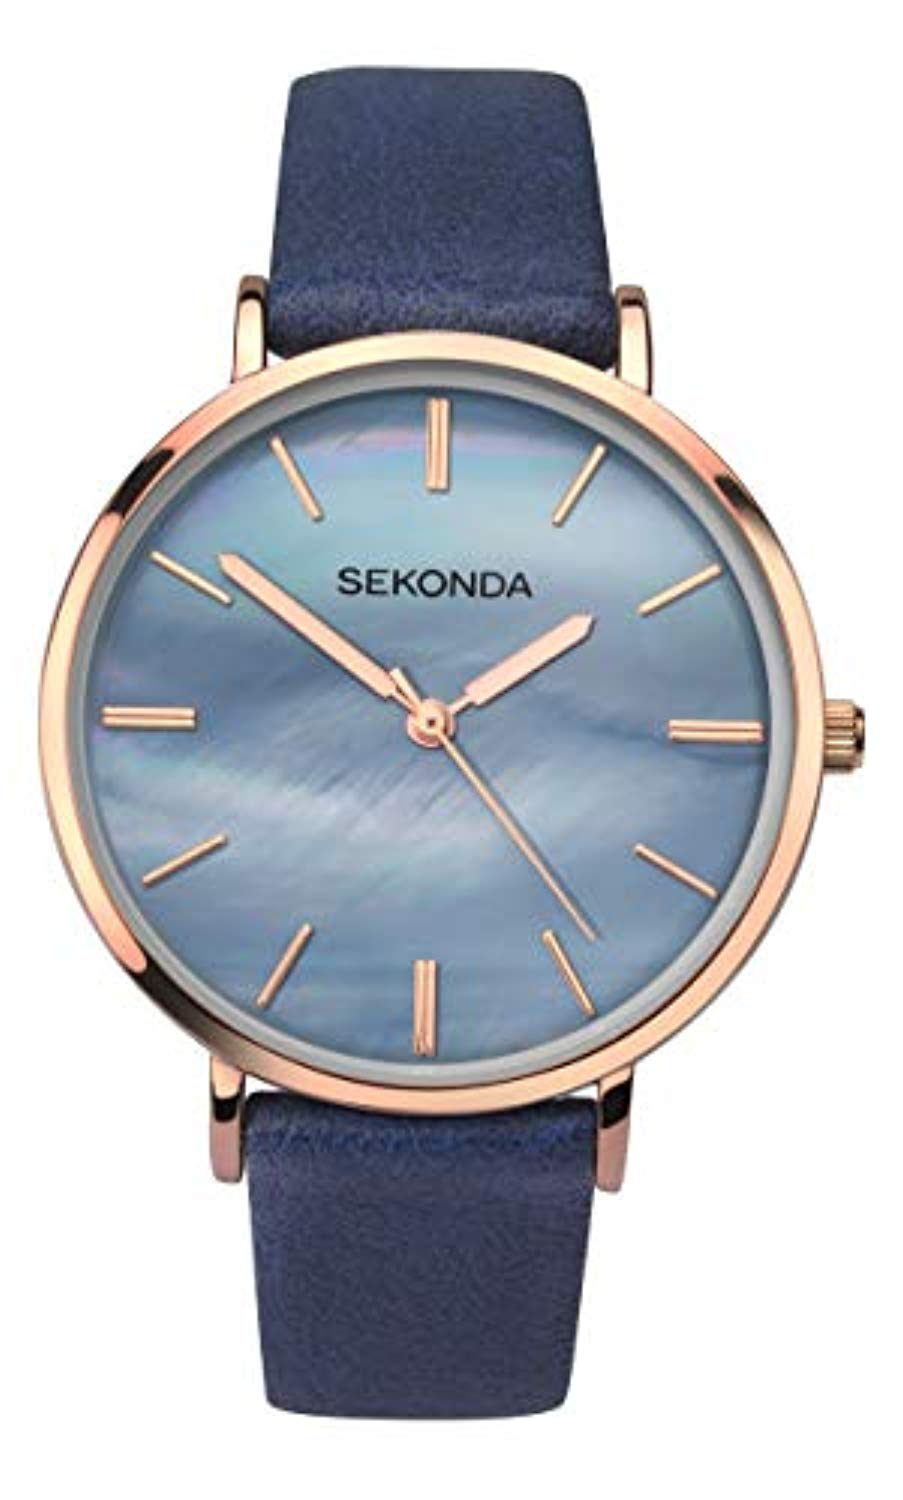 SEKONDA Womens Analogue Classic Quartz Watch with PU Strap 2559 - iBuy Africa